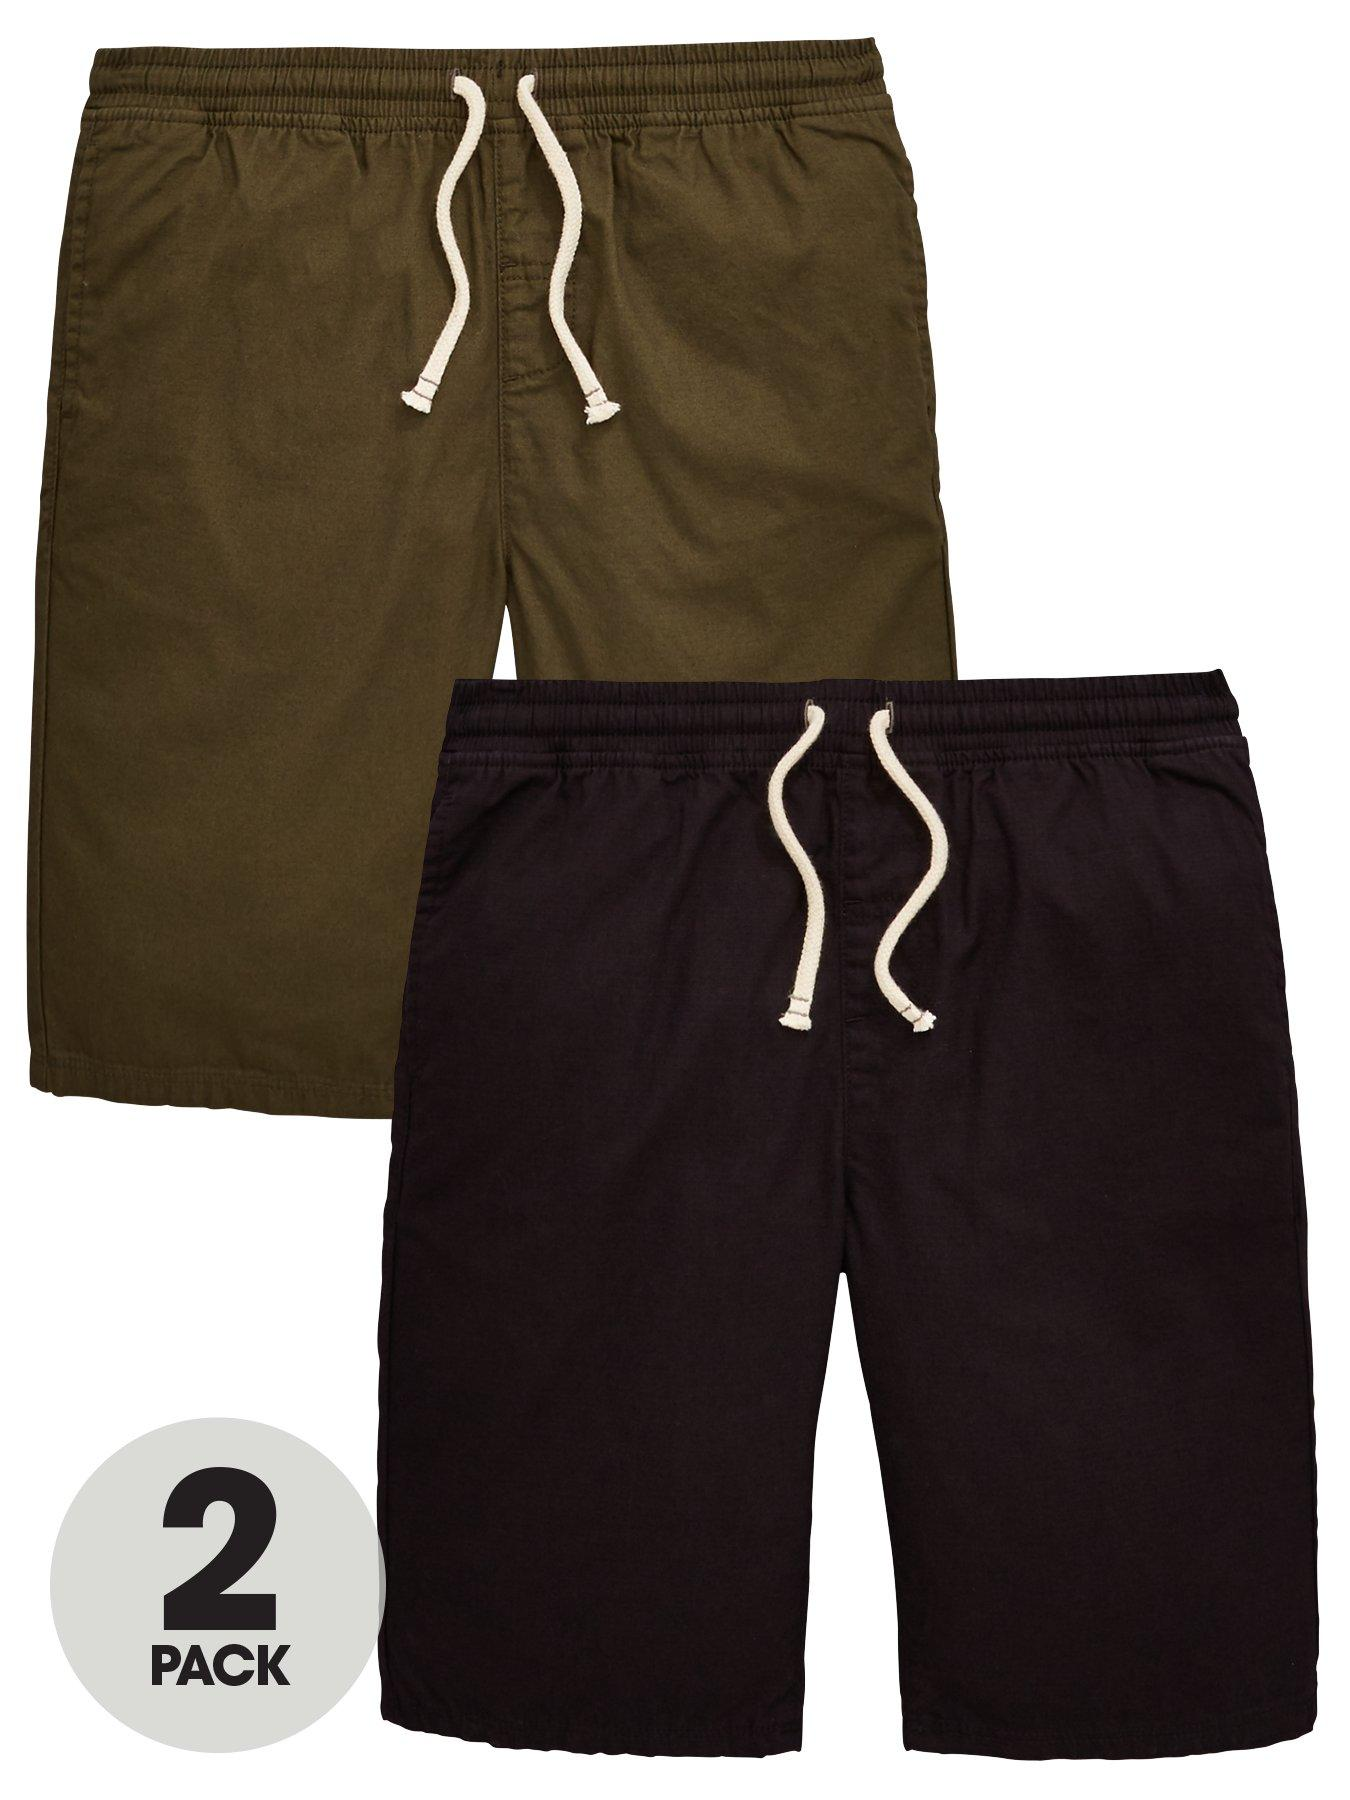 Boys' Clothing (0-24 Months) Clothes, Shoes & Accessories Next Chino Shorts 12-18 Months